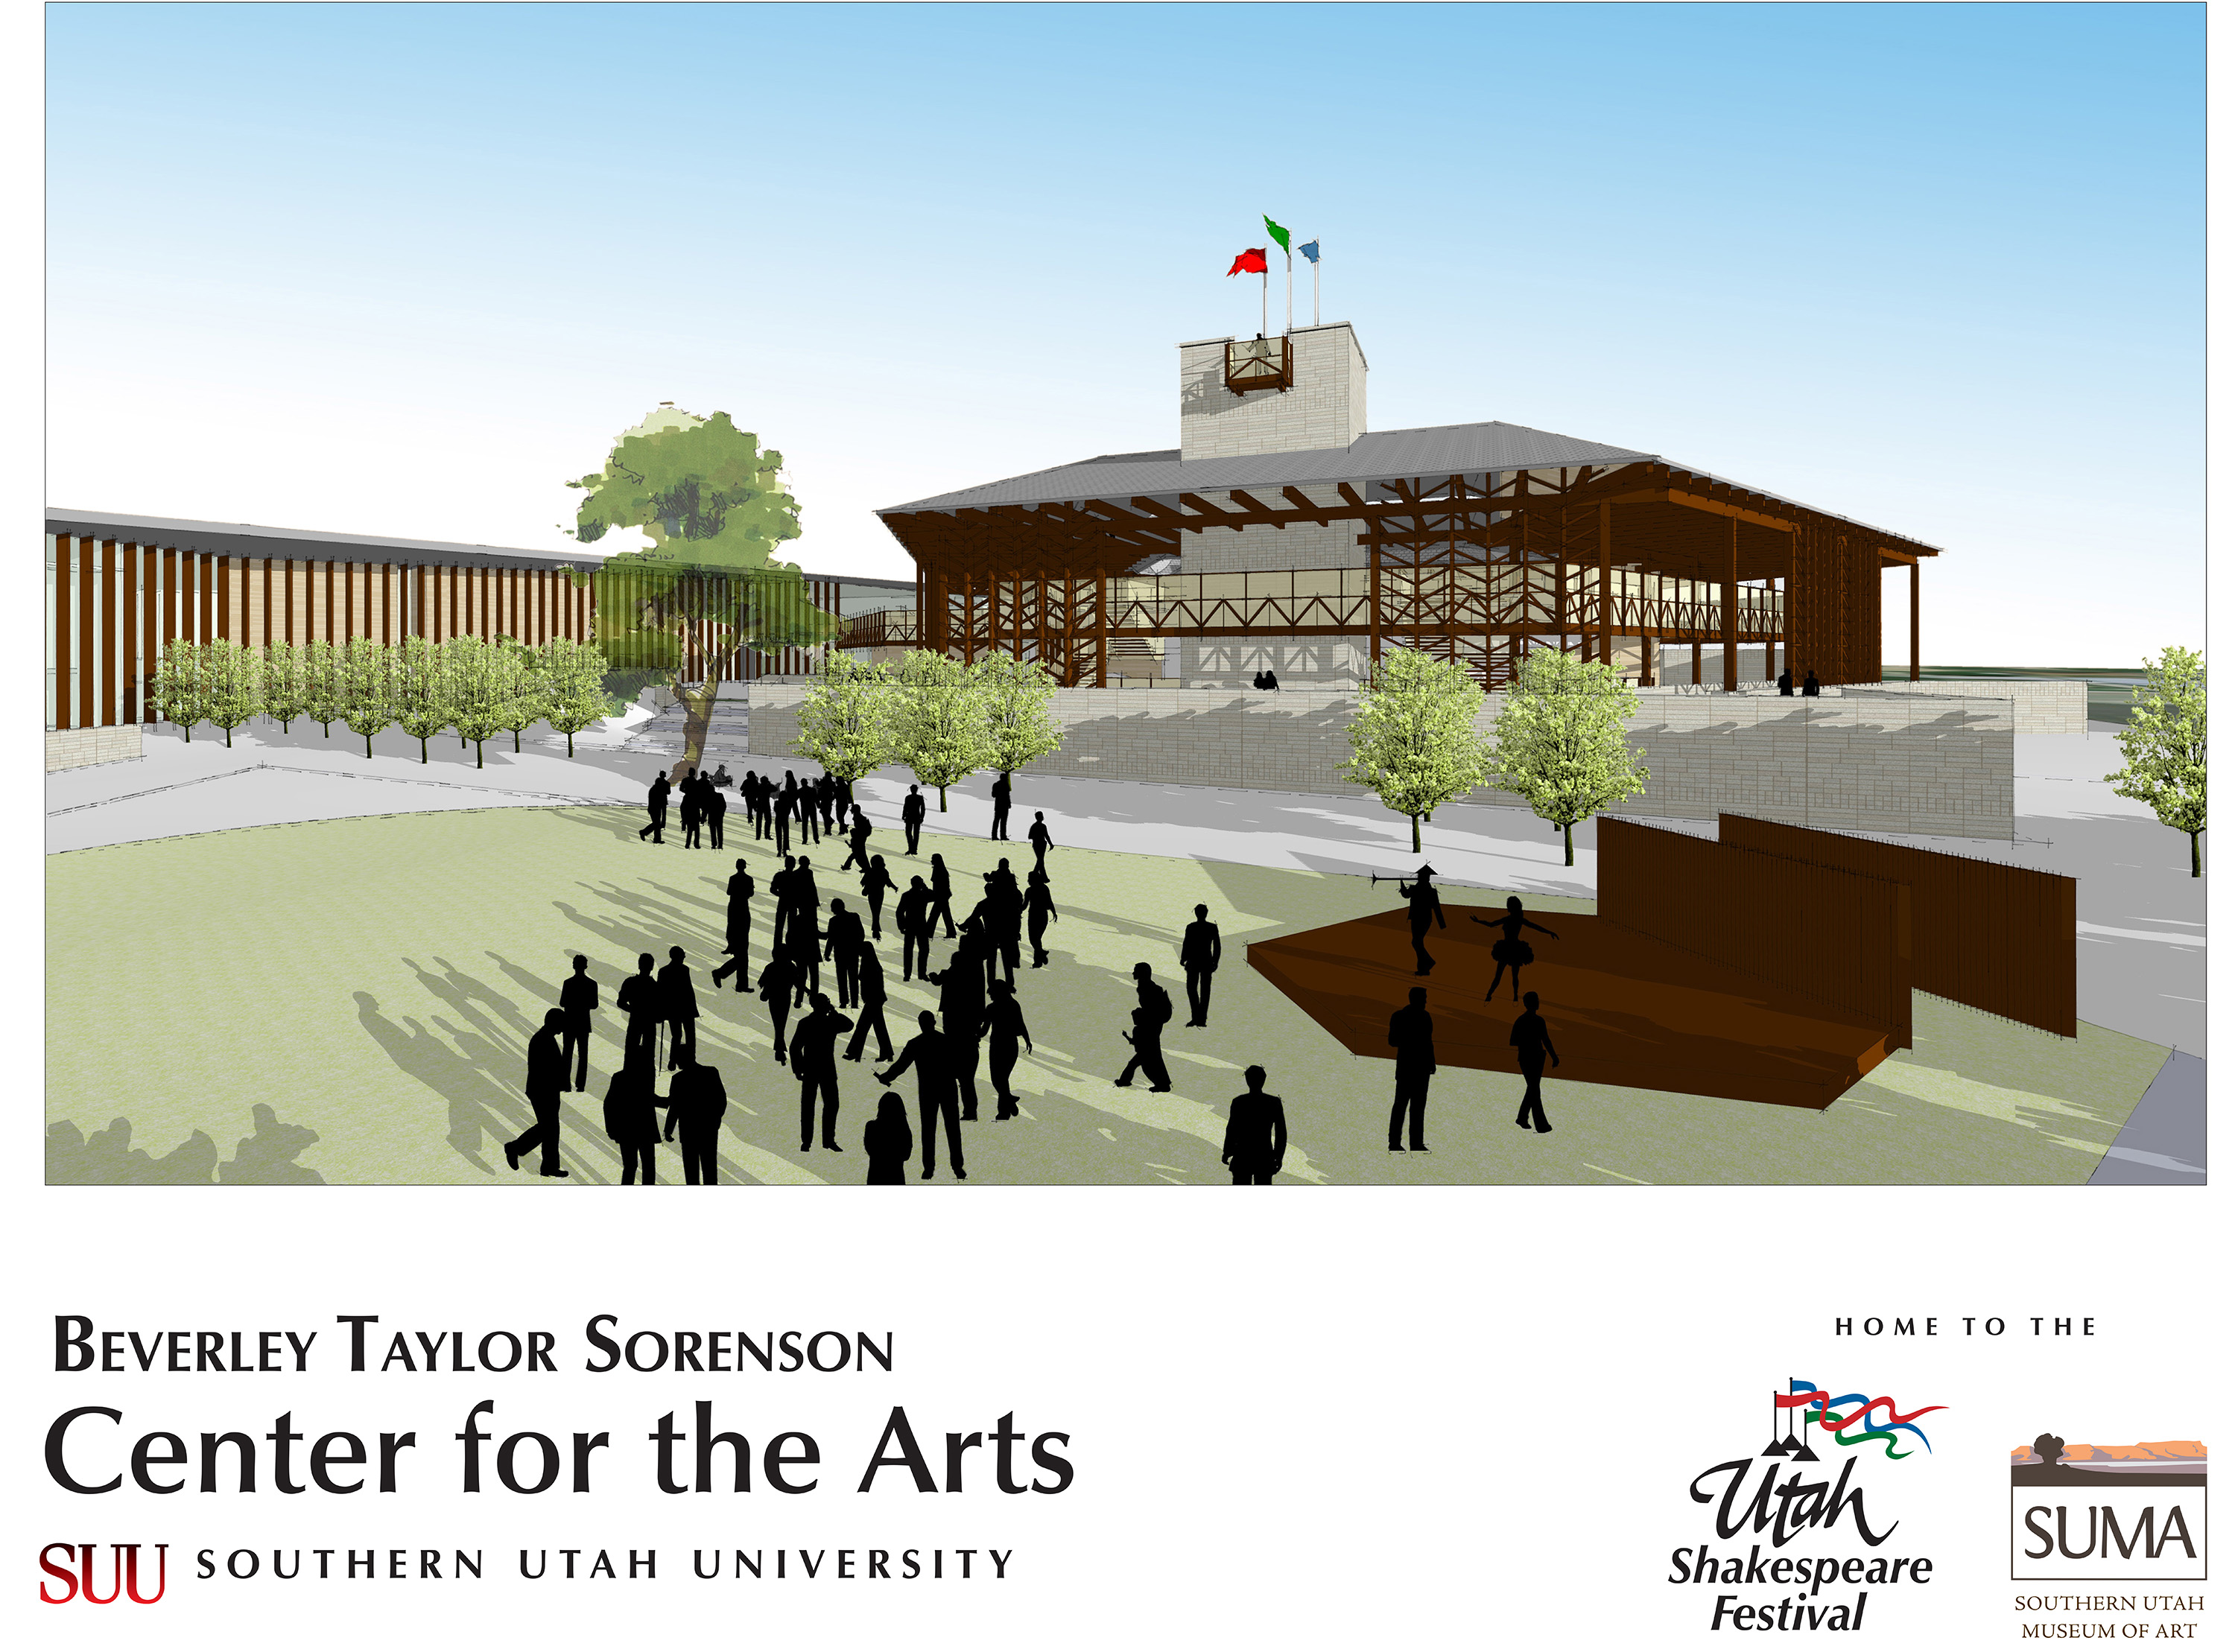 Englestad Theatre, Beverly Taylor Sorenson Center for the Arts | Rendering courtesy of Utah Shakespeare Festival, St. George News